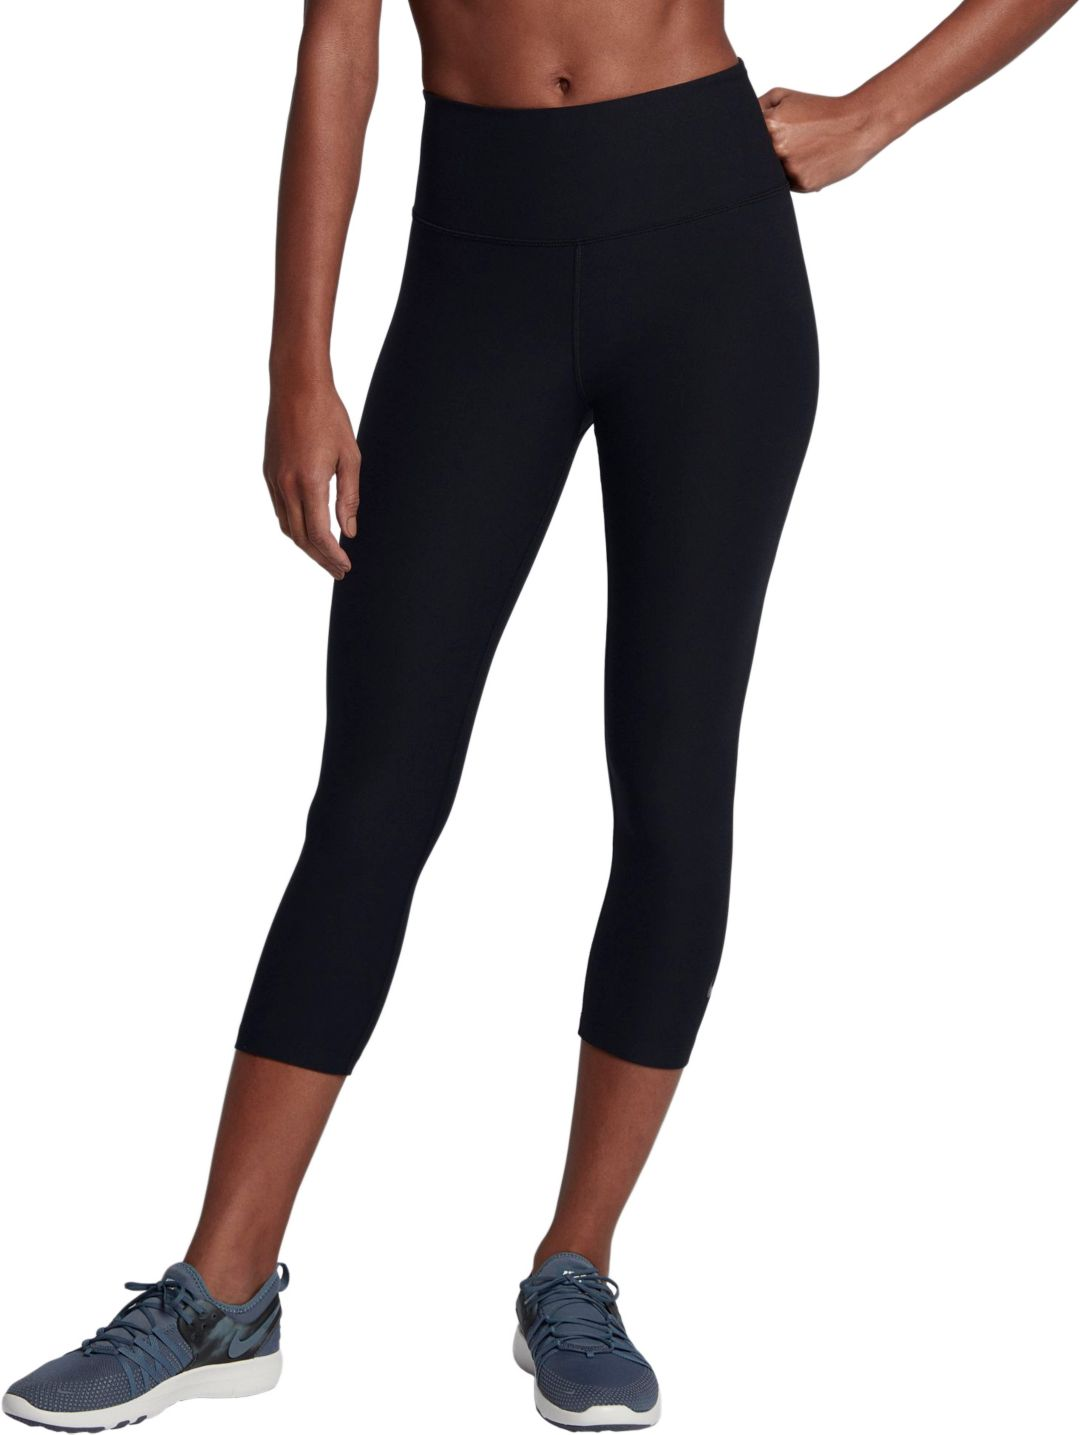 068d303cf9 Nike Women's Sculpt Hyper Crop Leggings. noImageFound. Previous